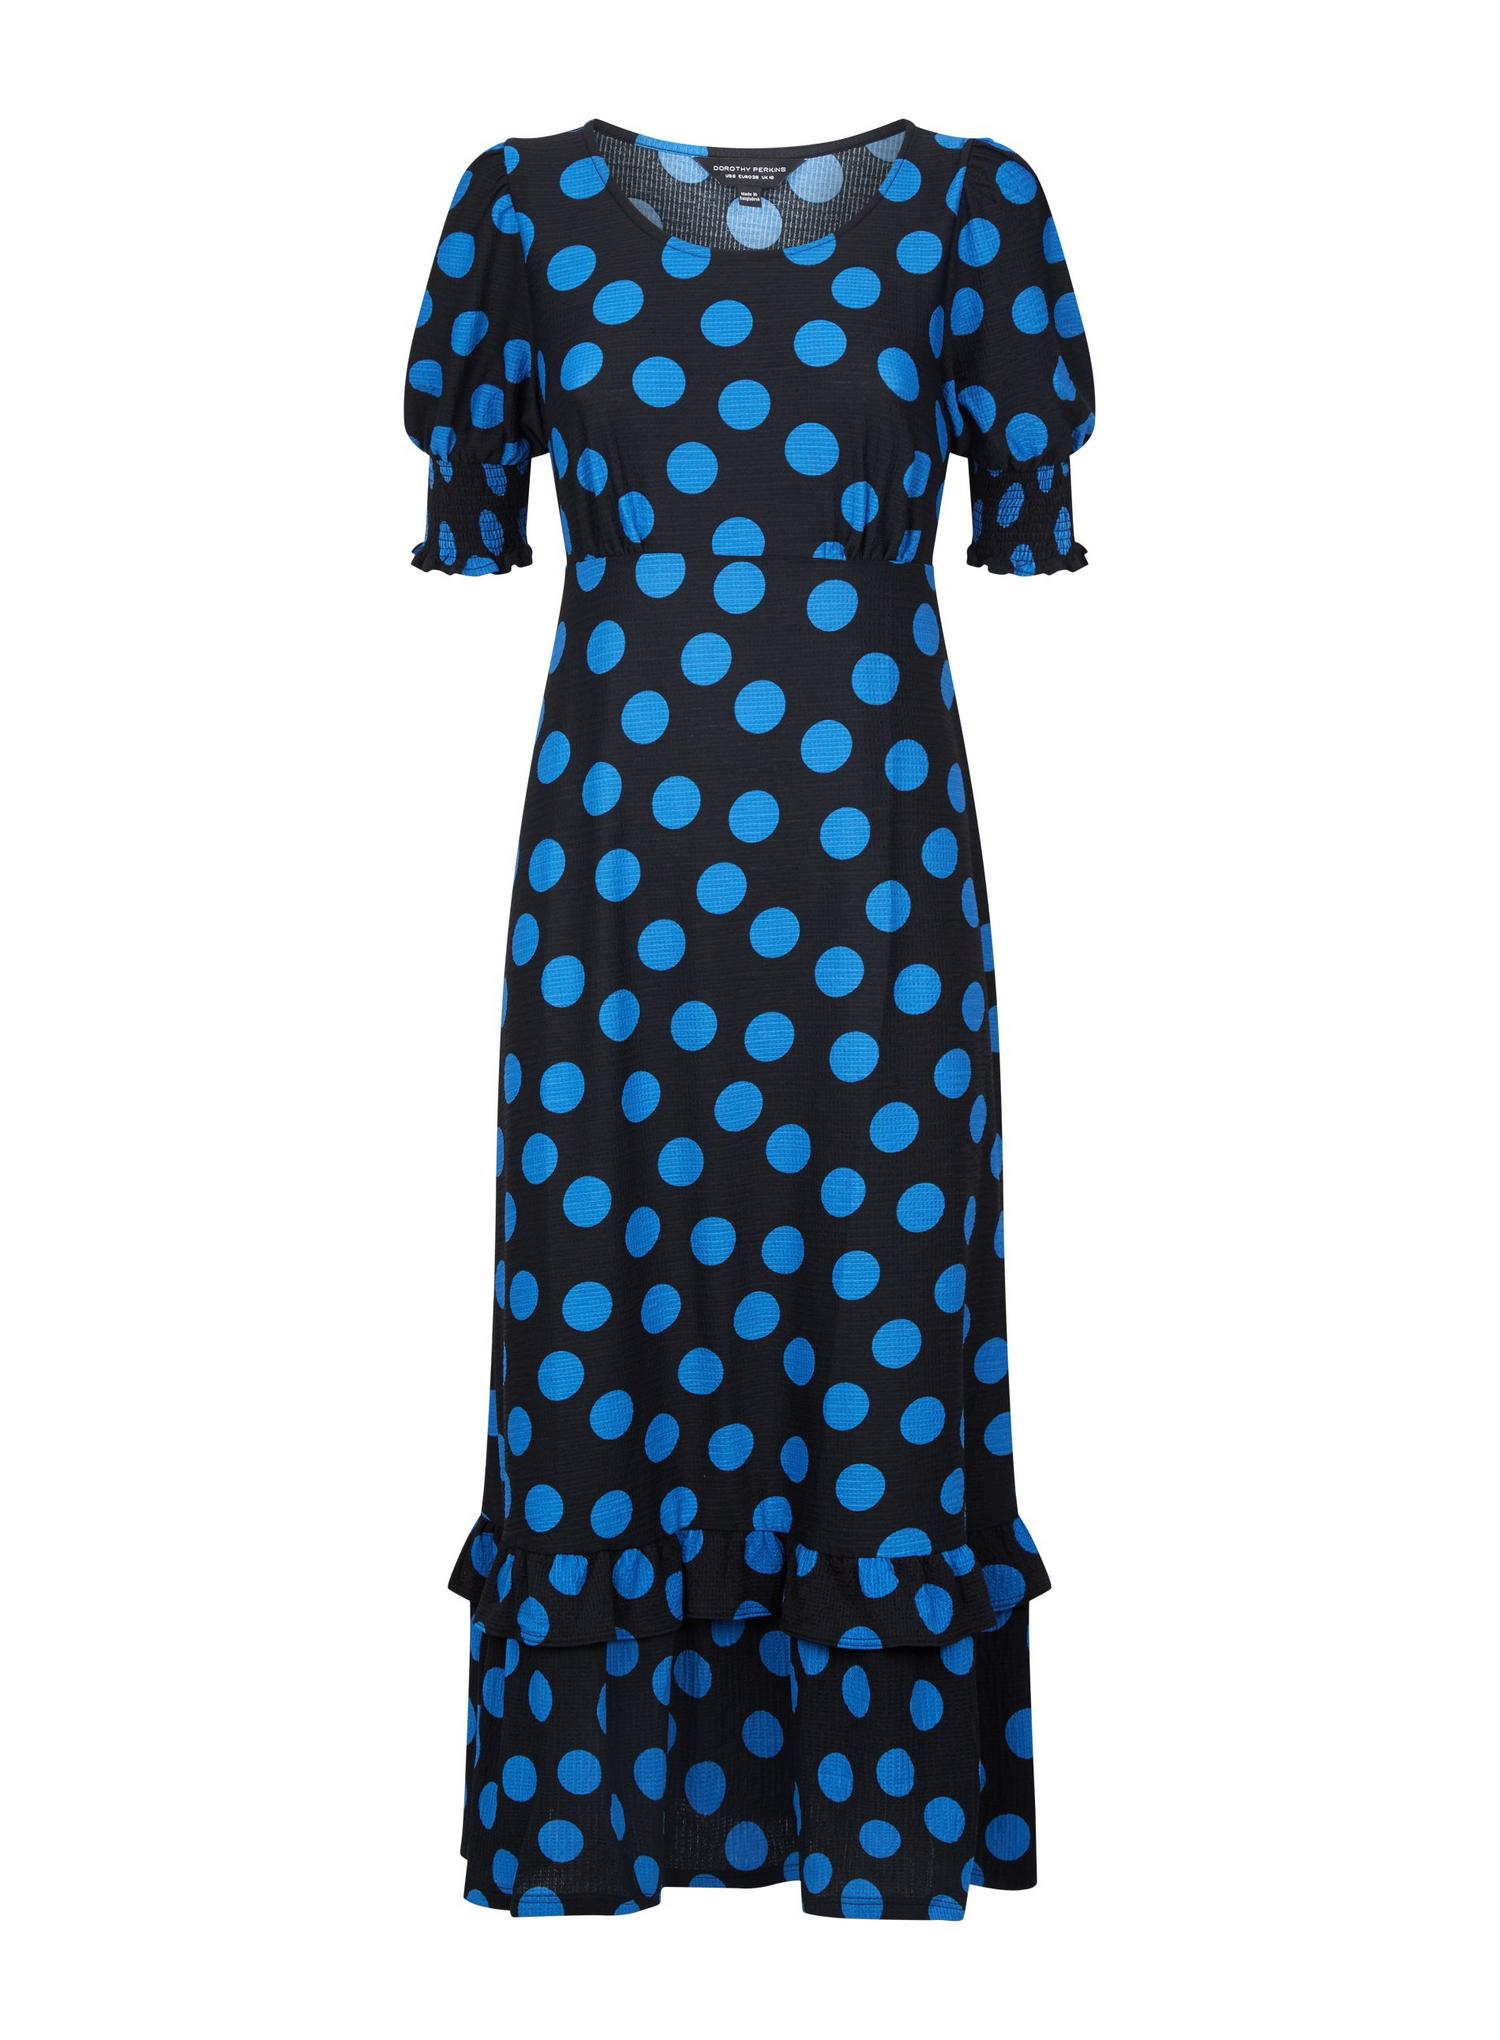 105 Blue Spot Print Textured Maxi Dress image number 2